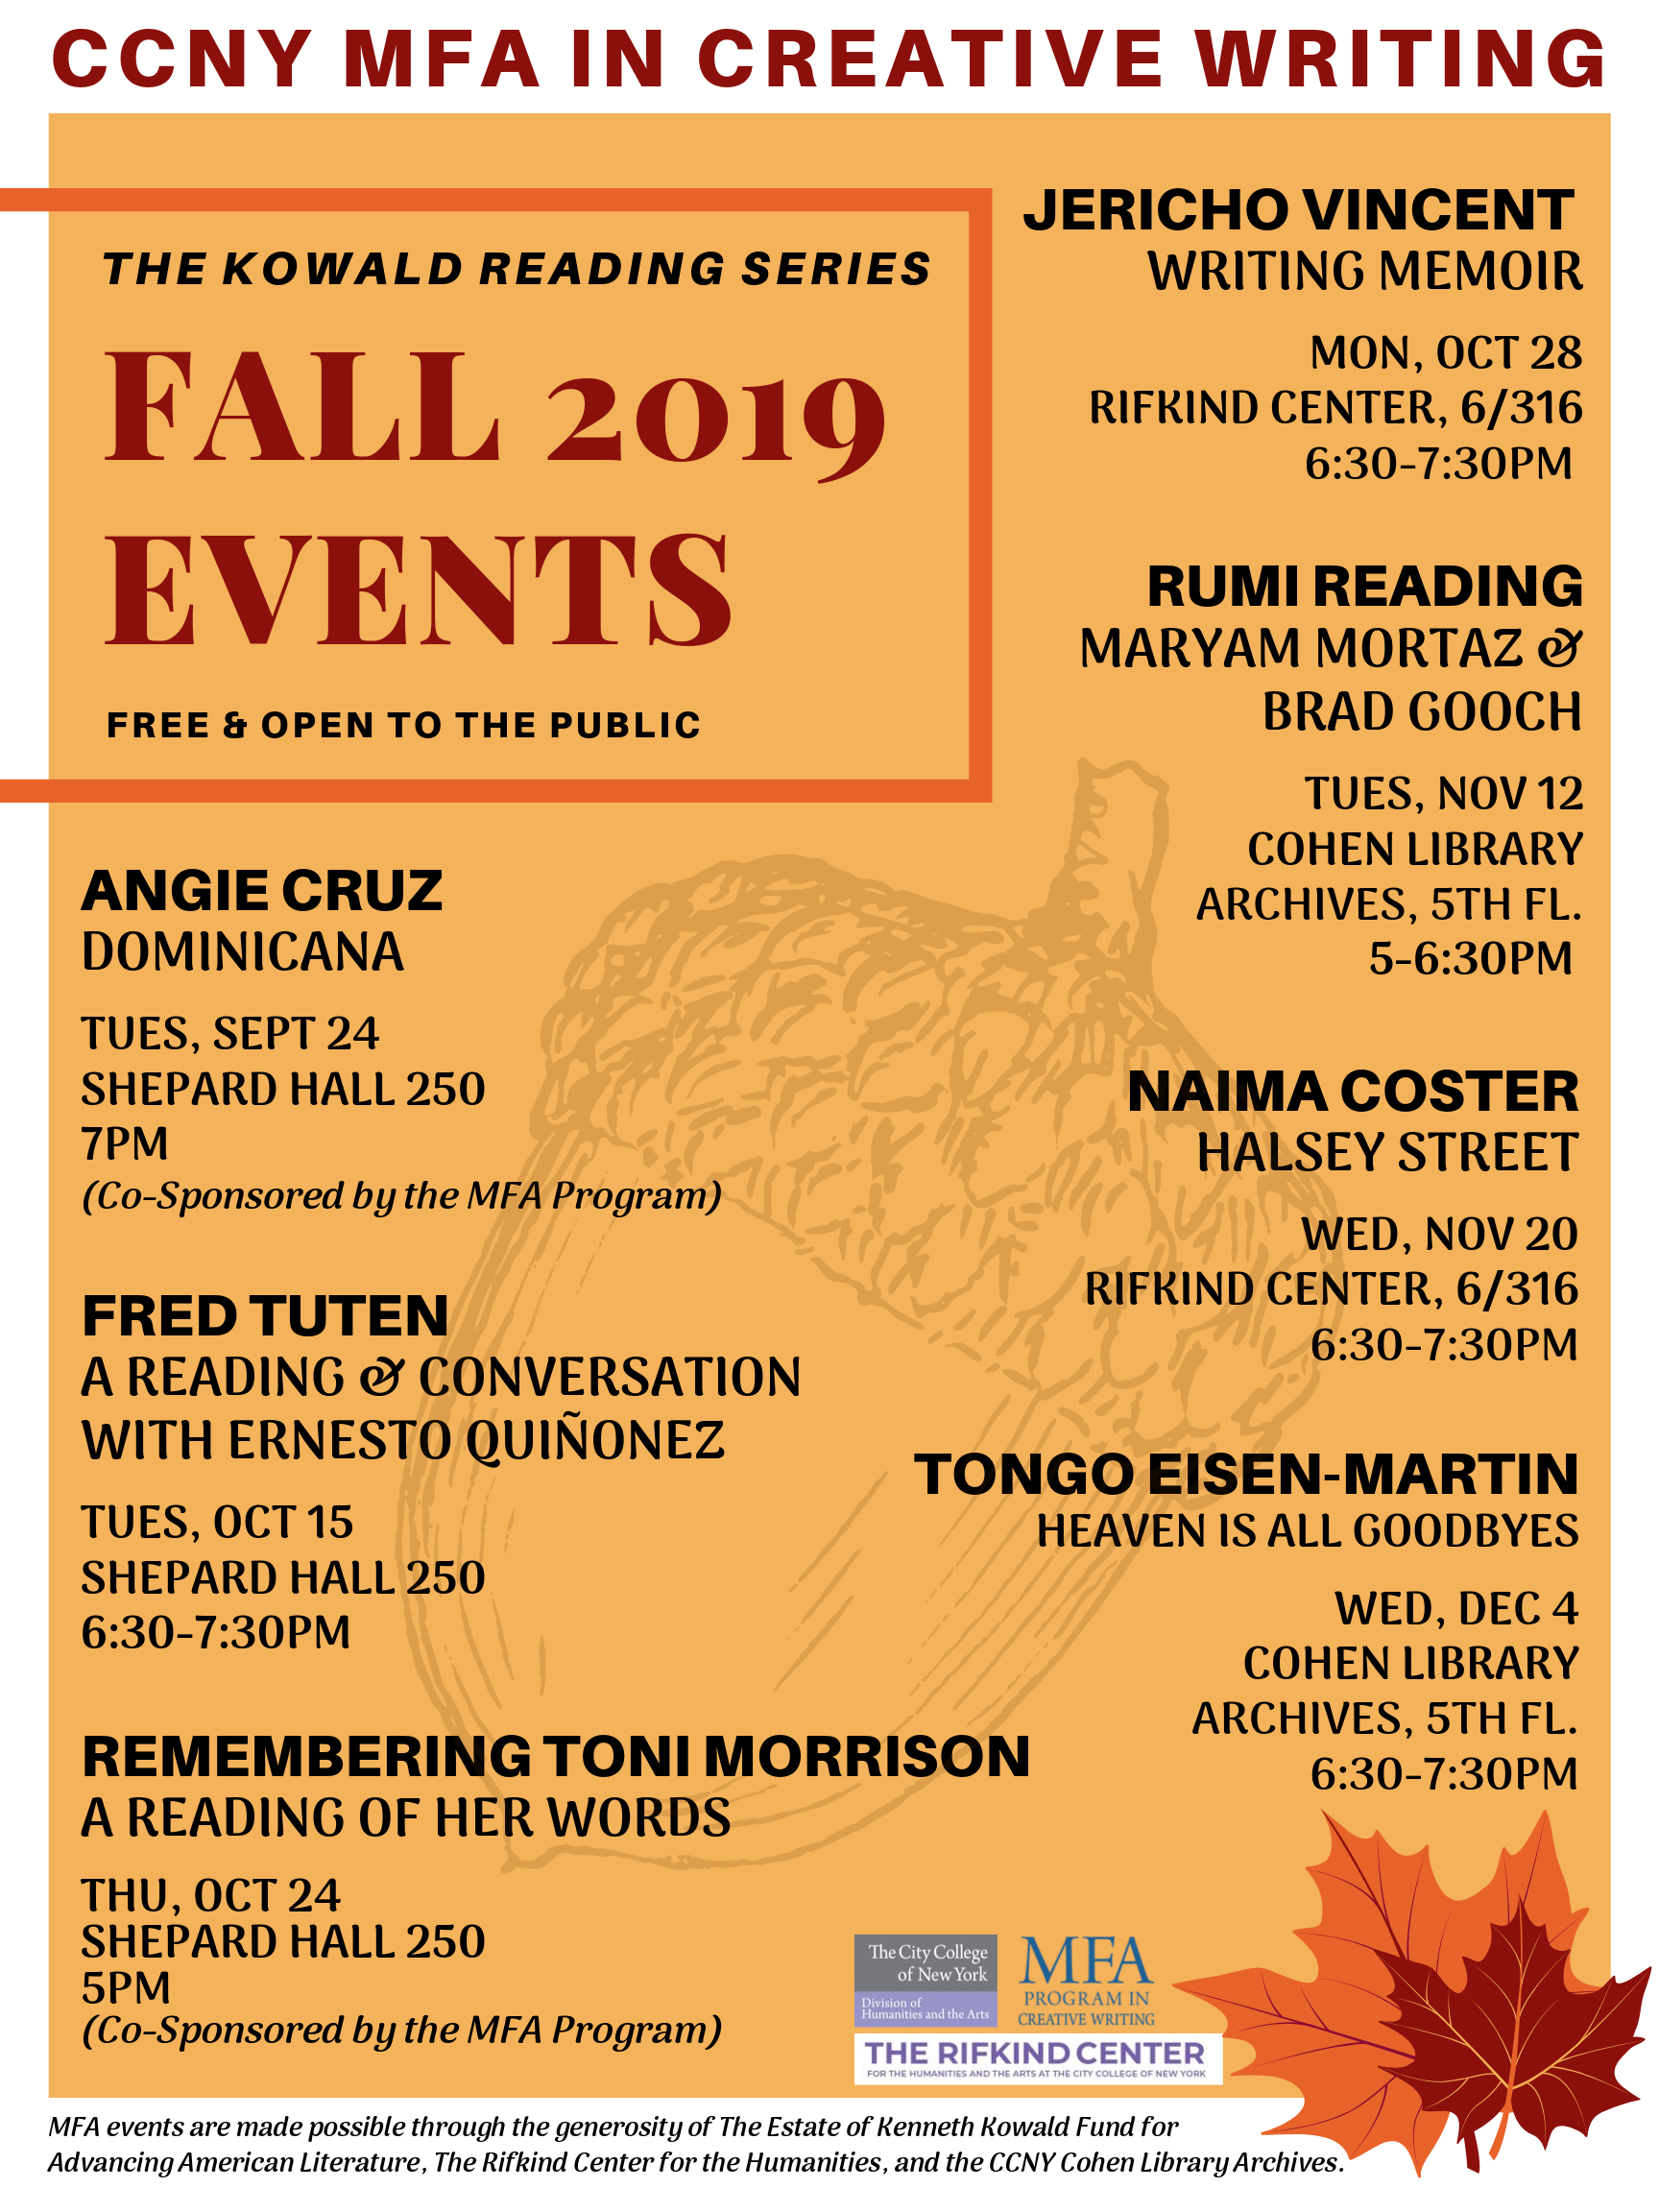 FAll 2019 Kowald Reading Series